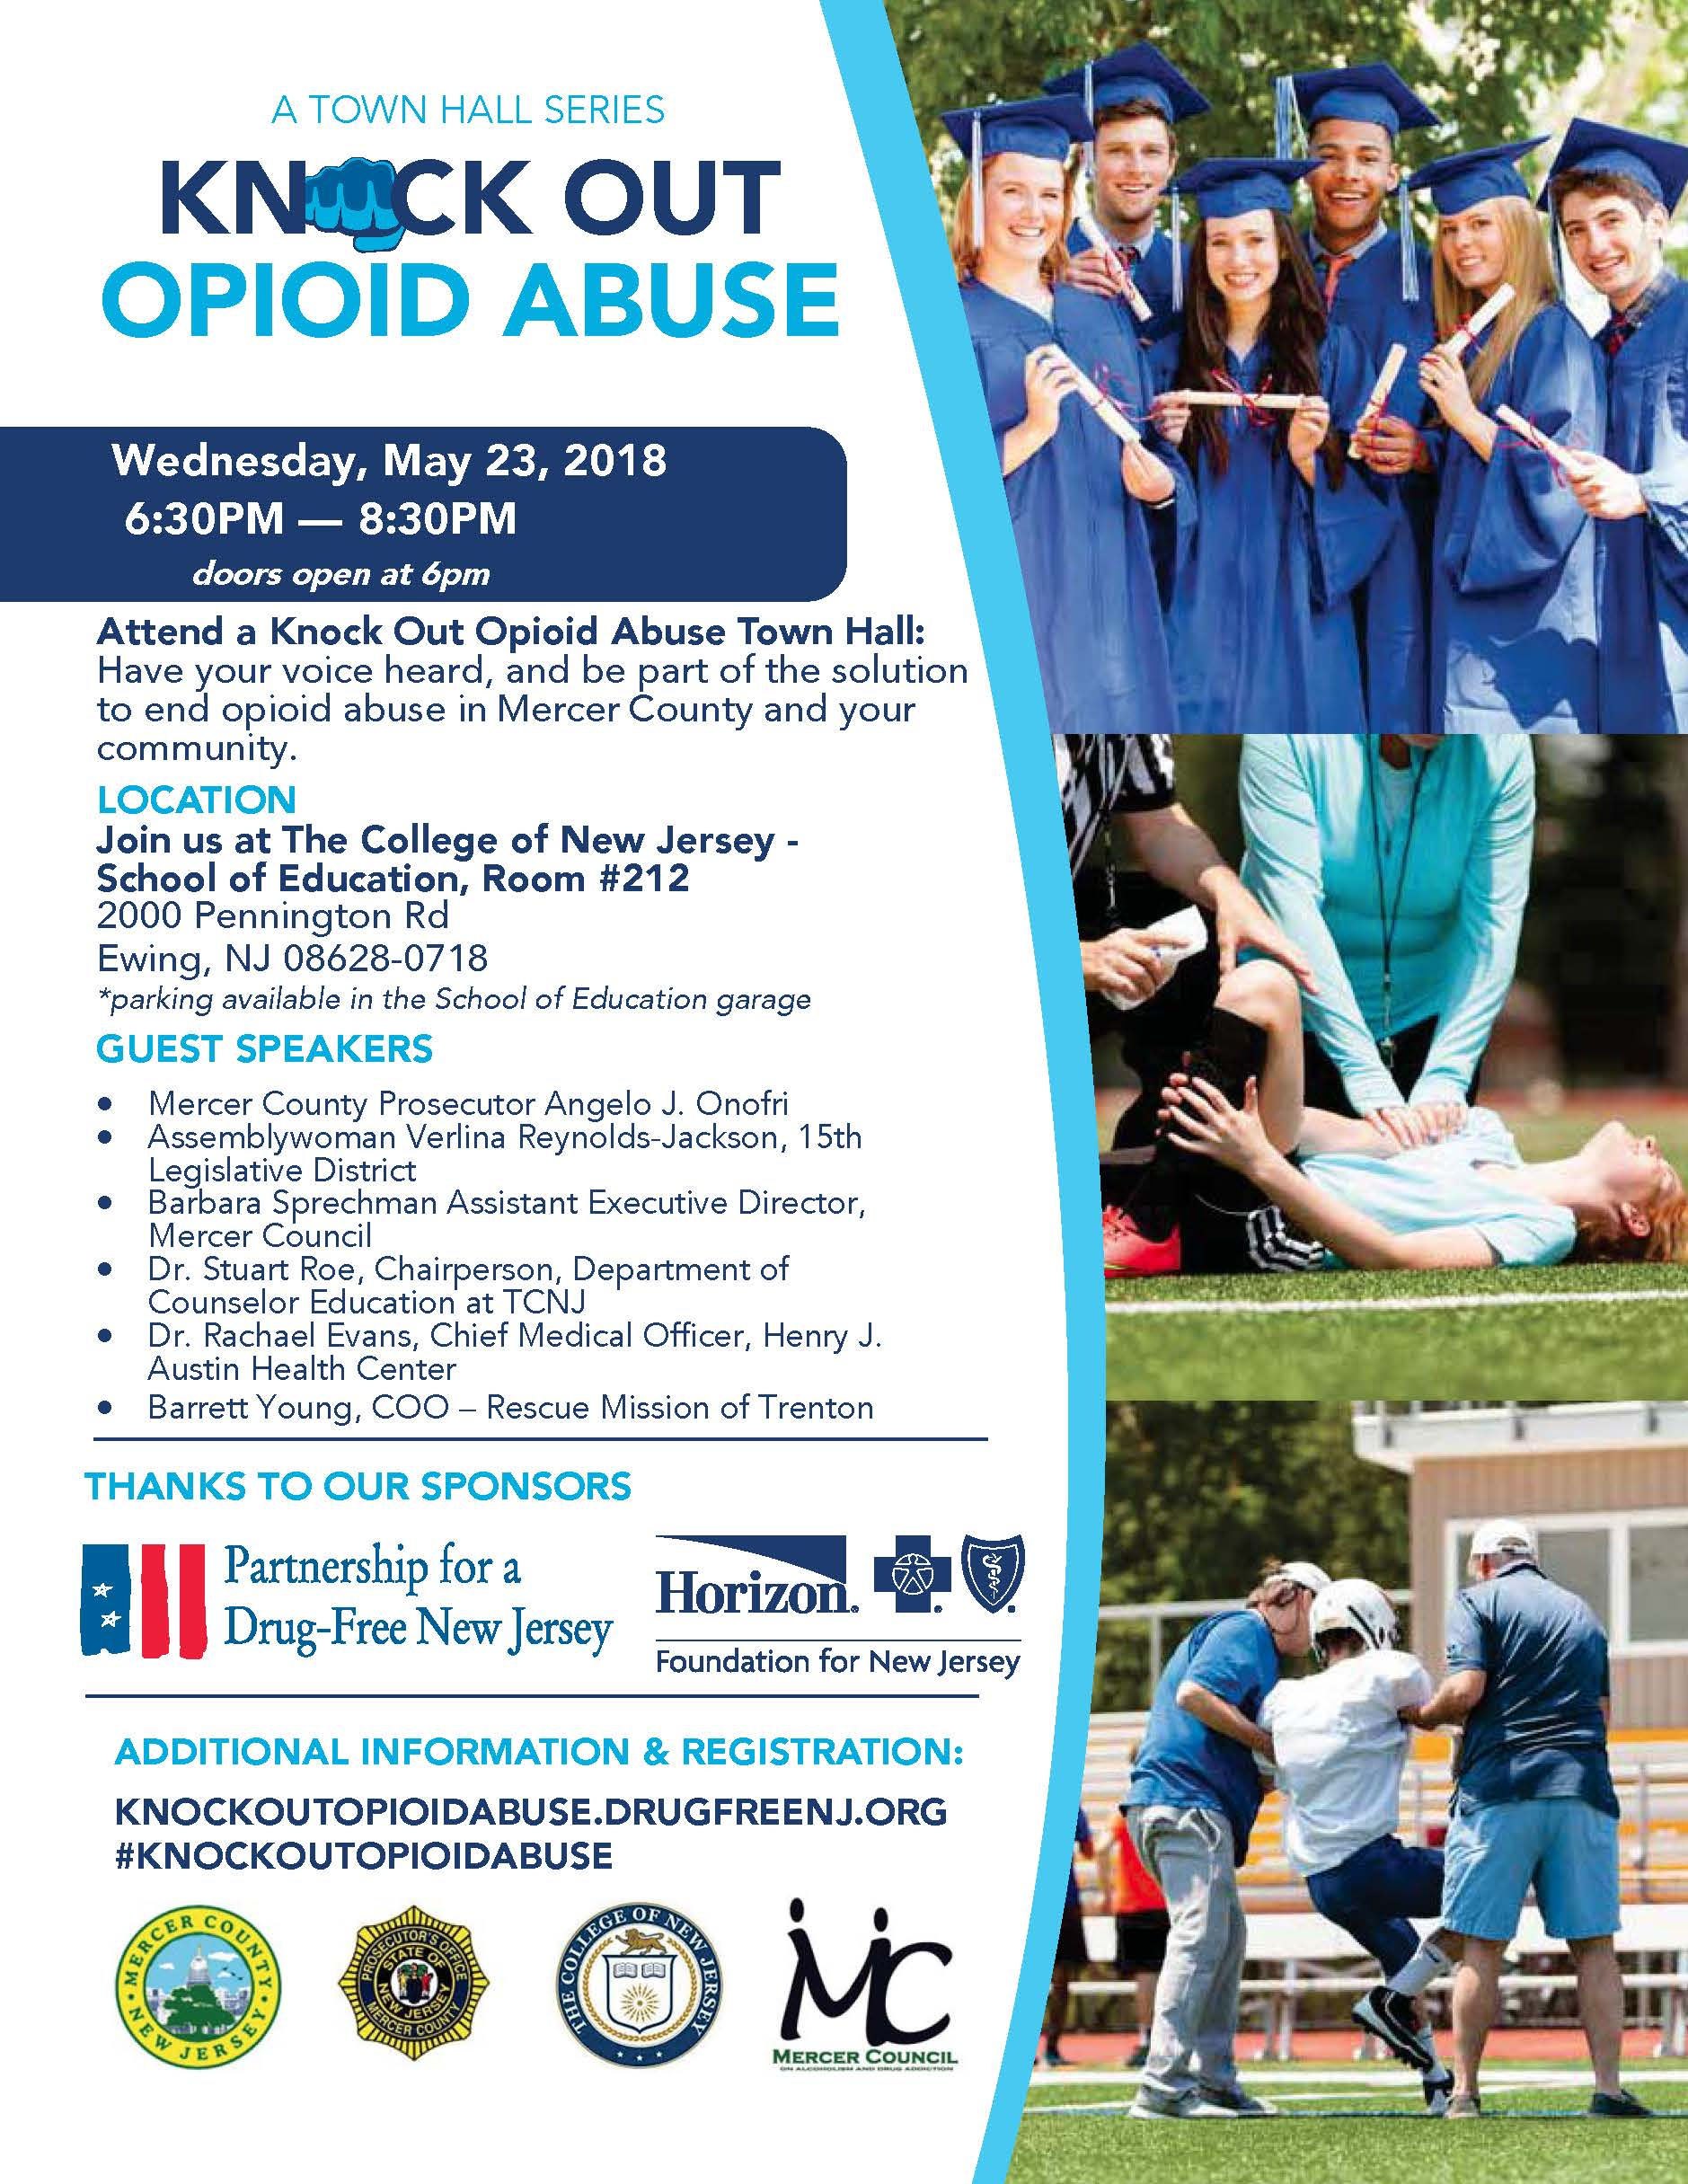 Knock Out Opioid Abuse